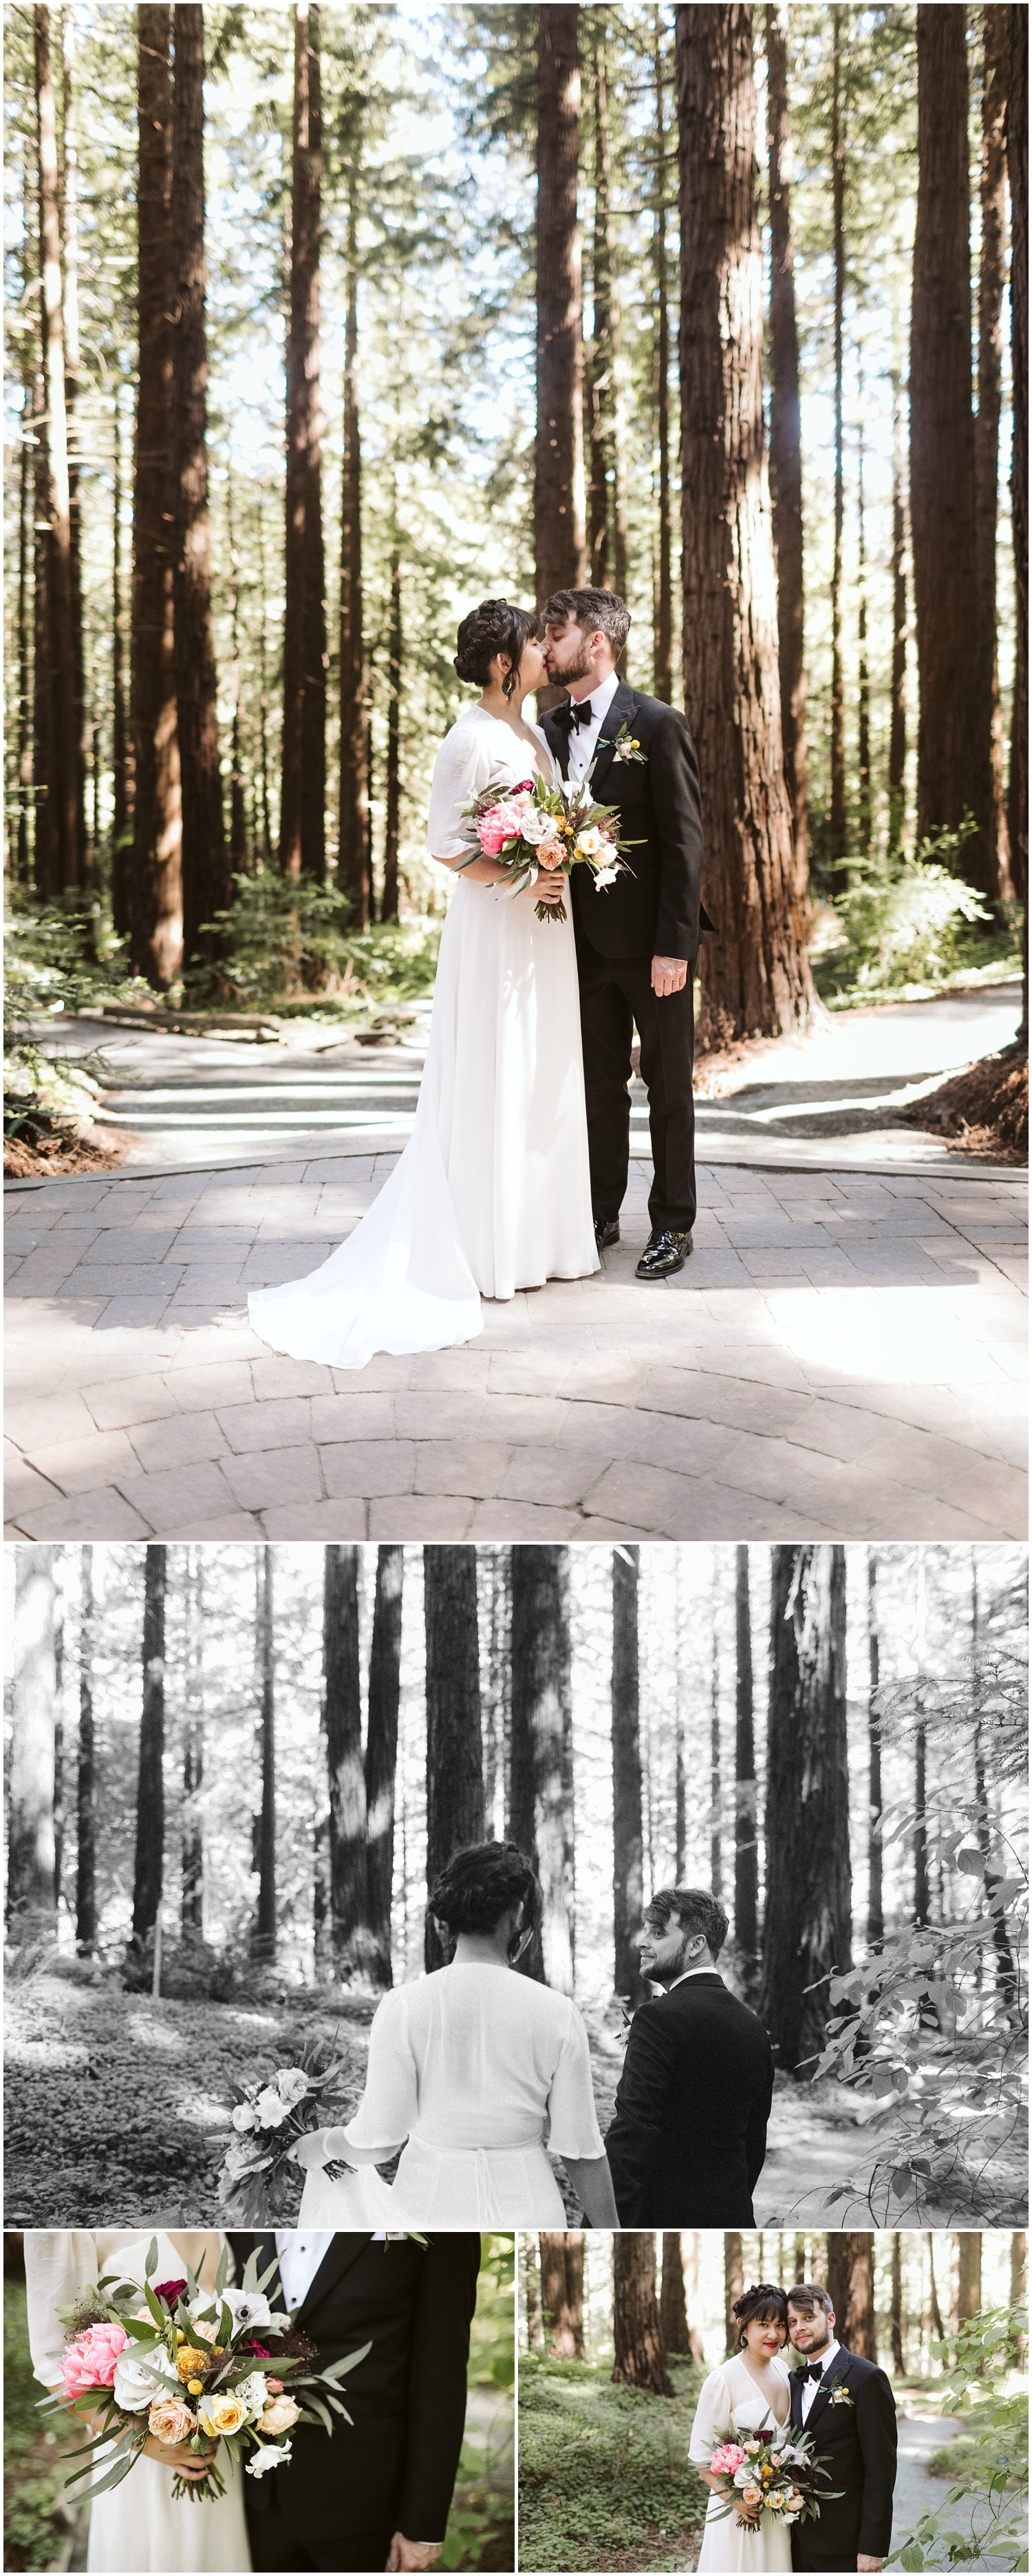 UC Berkeley Botanical Garden Redwood Grove Wedding | Derek + Debbie